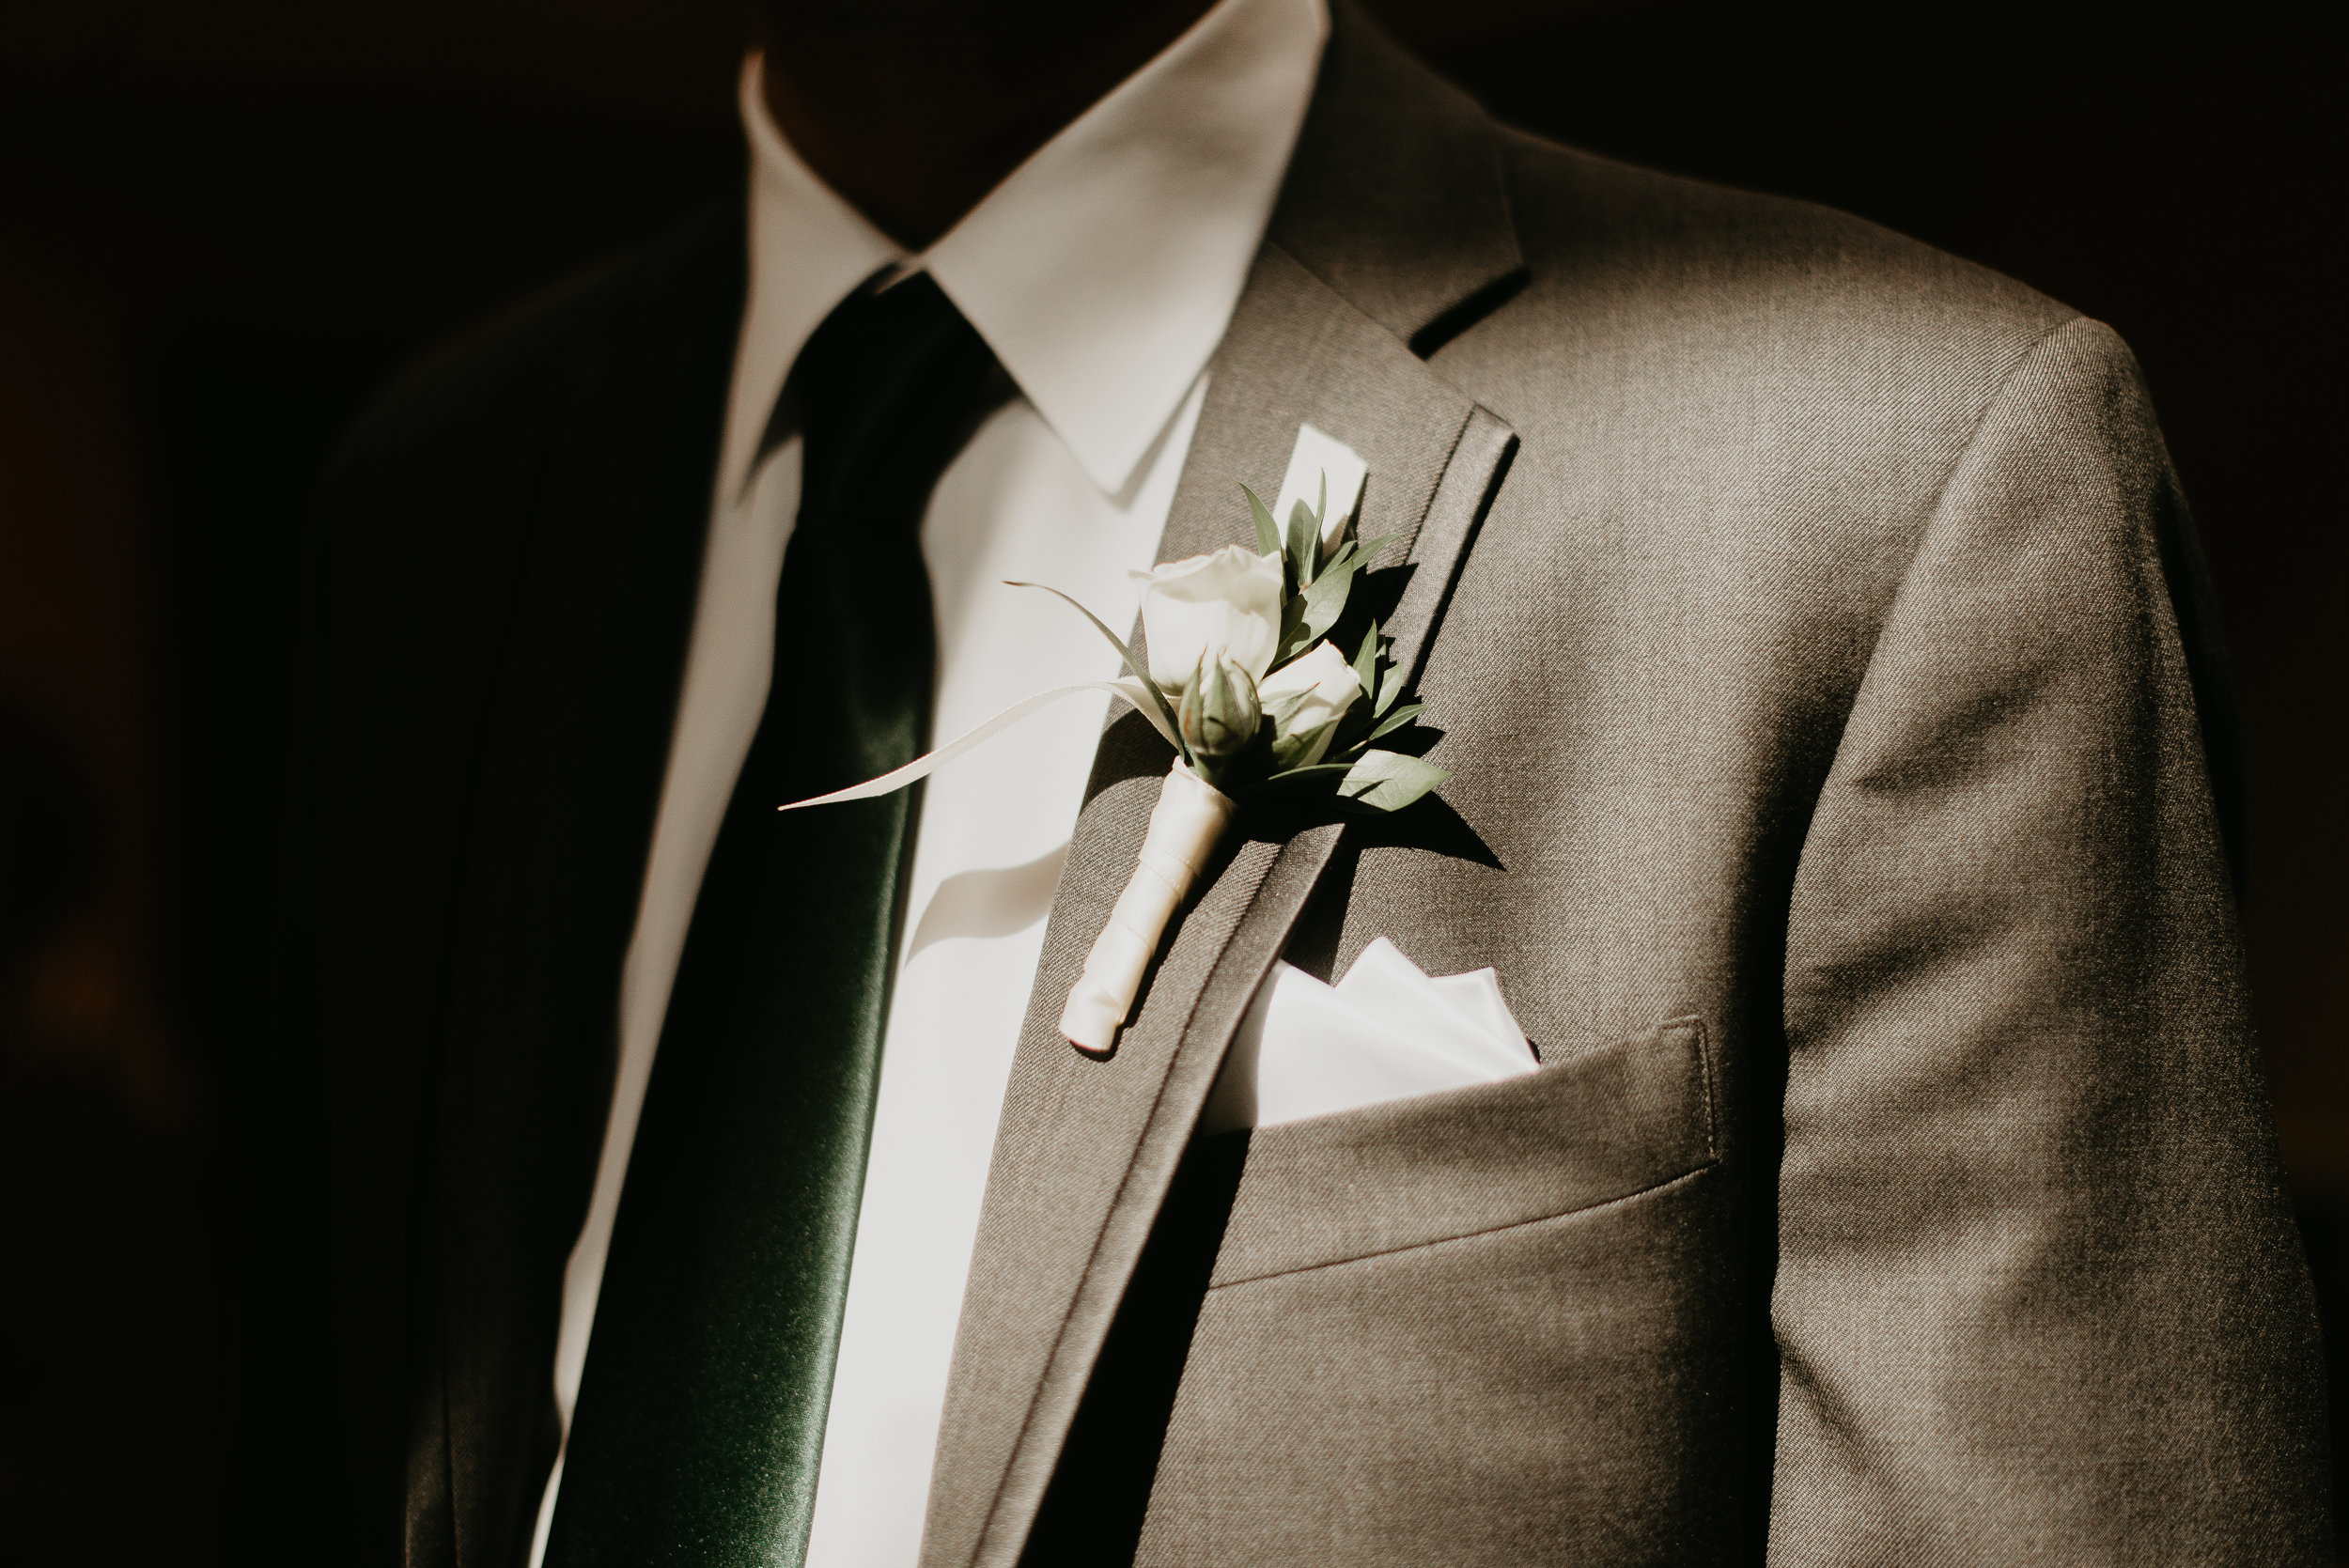 Groomsmen boutonniere with moody tones